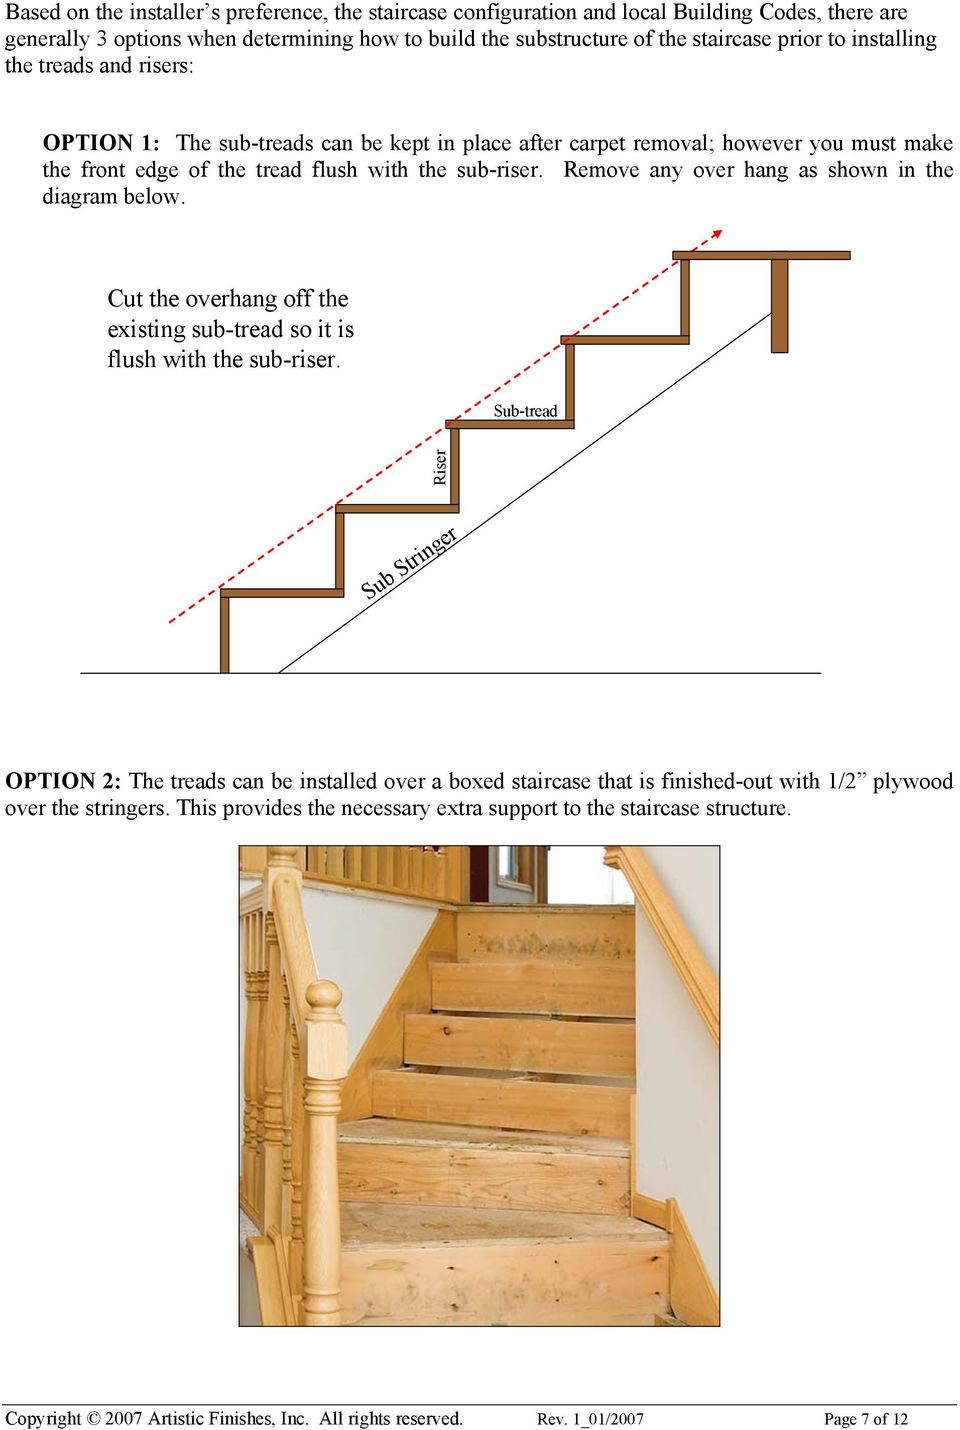 How To Install Treads And Risers On Stringers